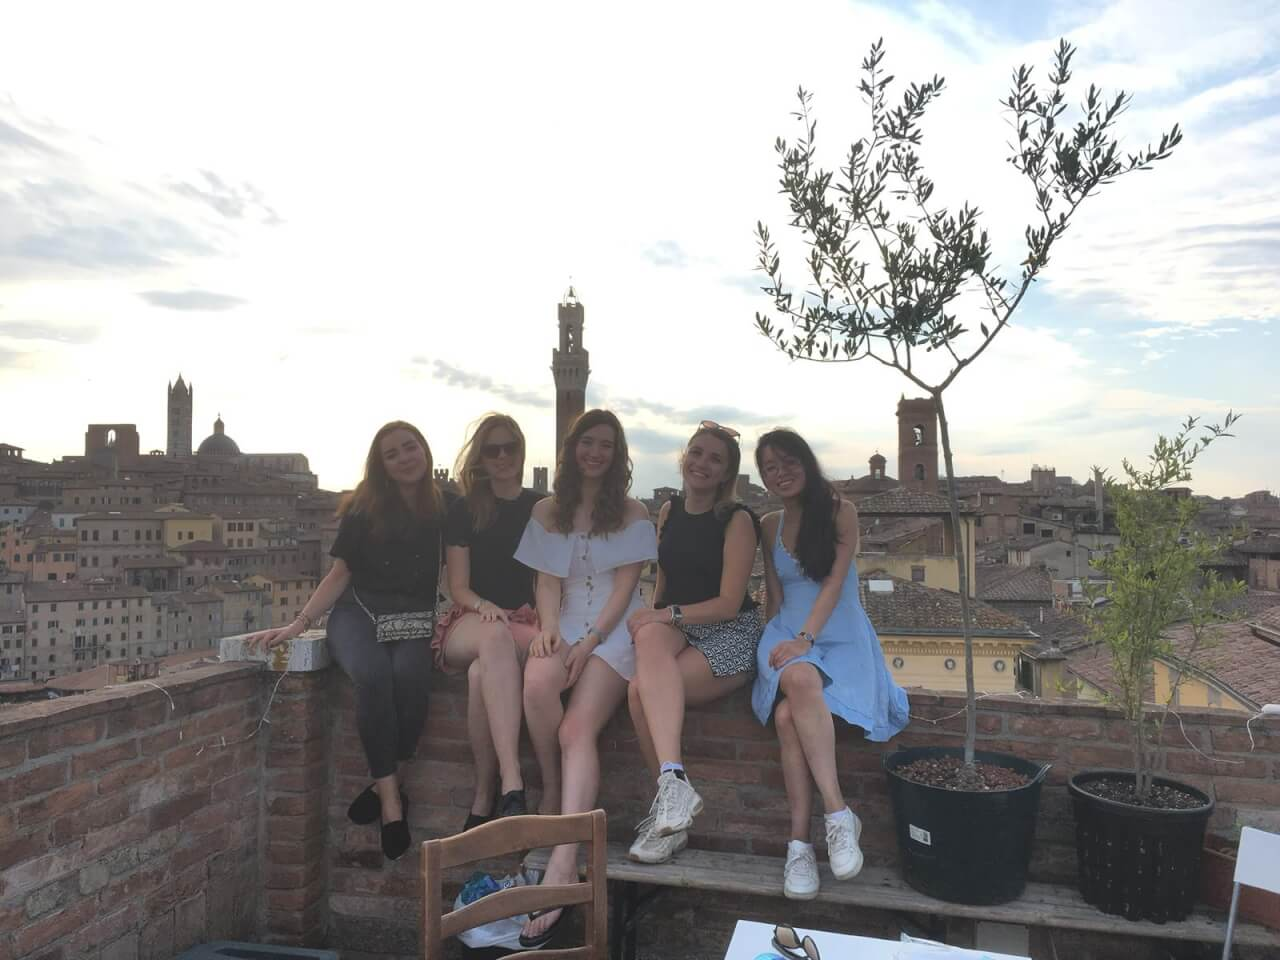 Arrivederci Siena! The end of my Year Abroad